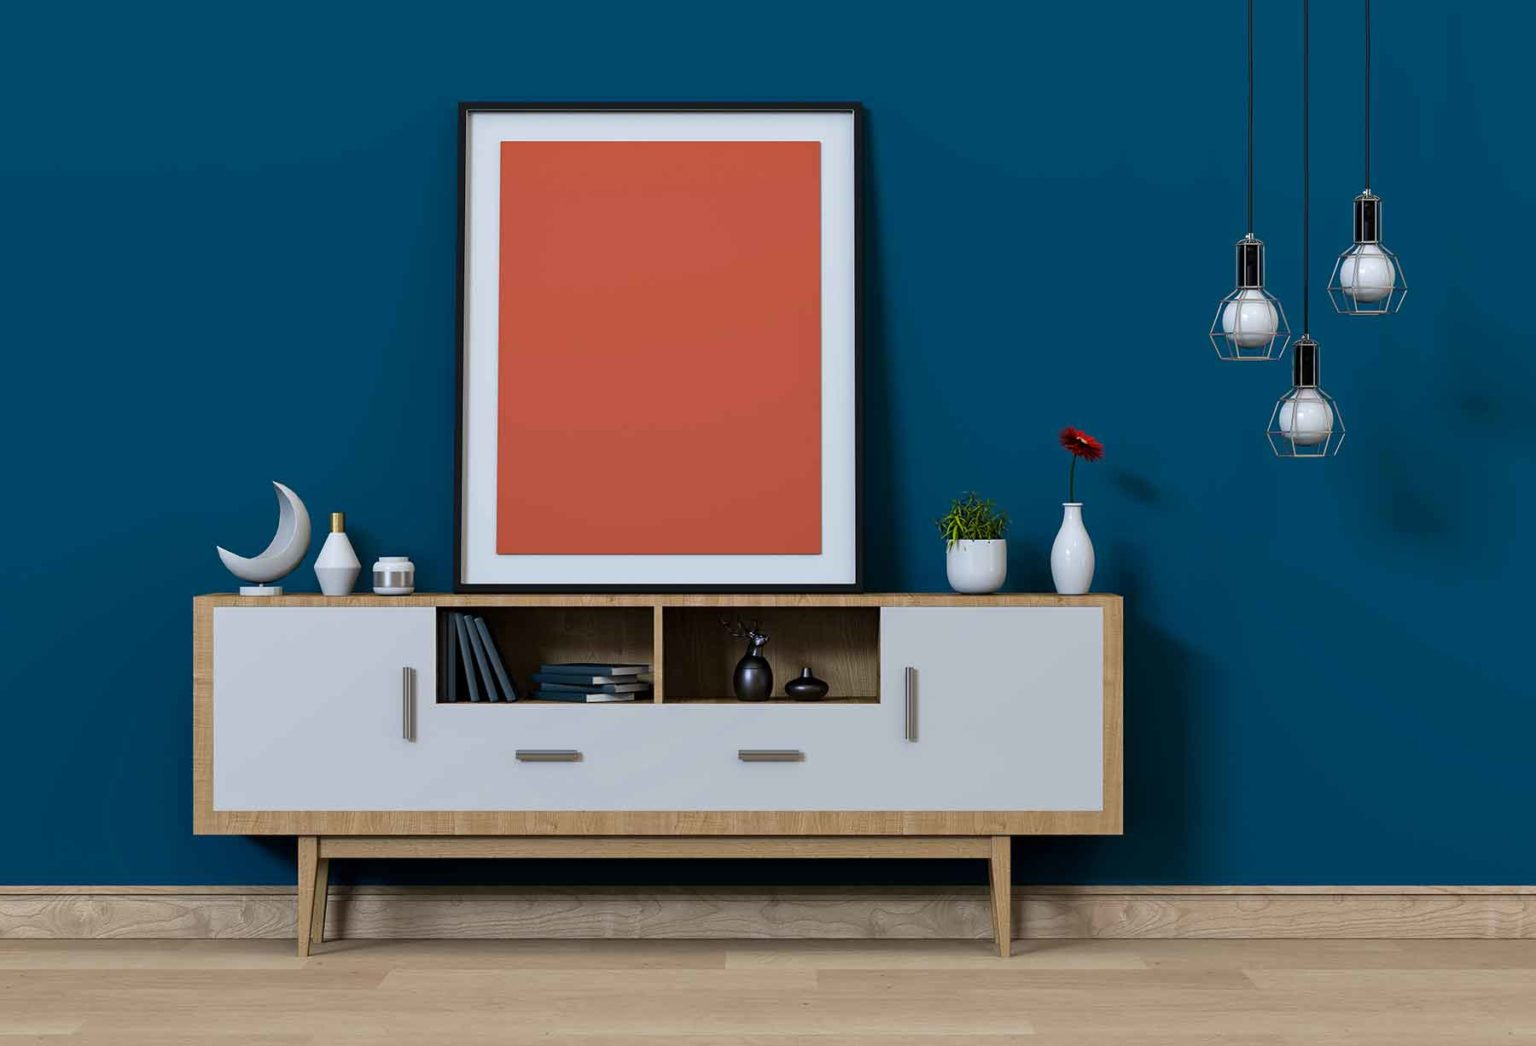 interior-living-room-with-sideboard-and-mockup-bla-EY7C5LS.jpg